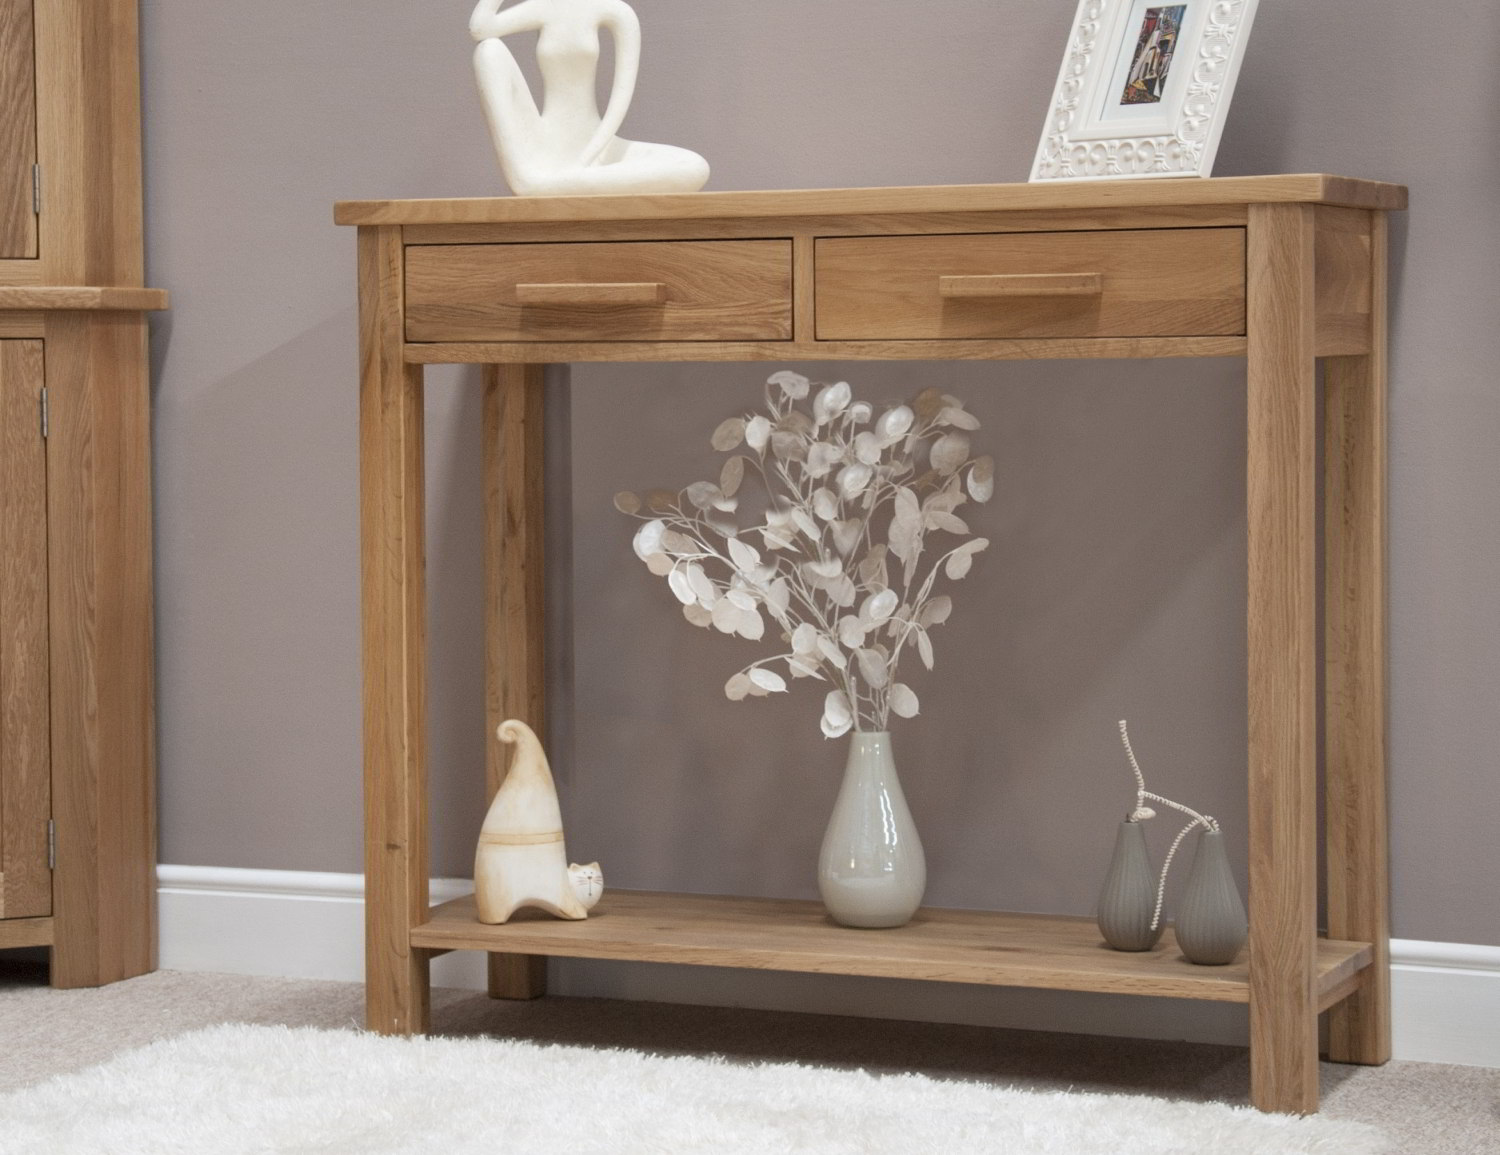 Eton solid oak modern furniture hallway hall console table for Small console tables contemporary